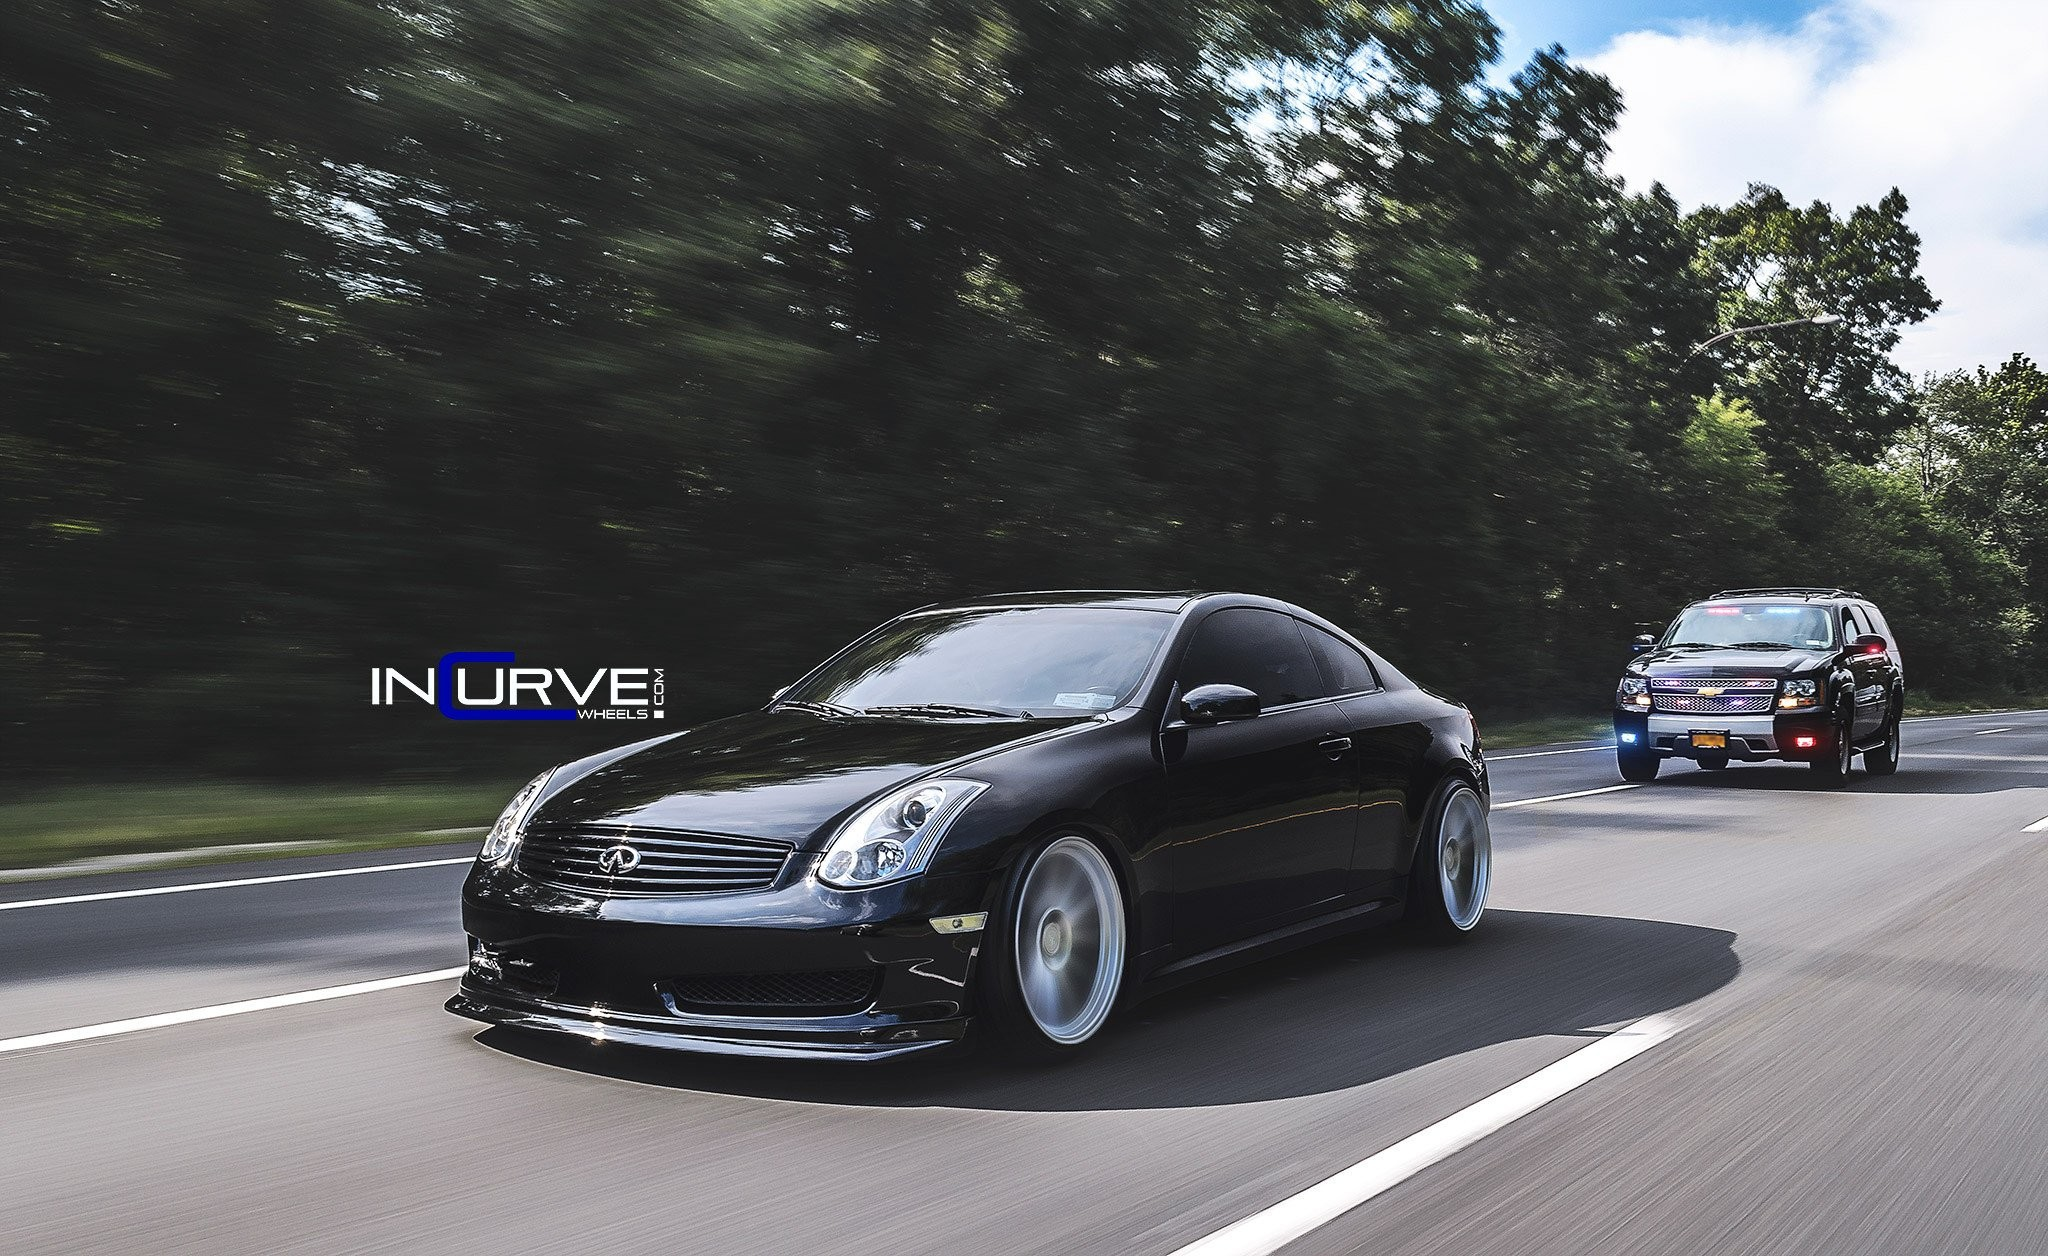 2048x1256 2015 Incurve Wheels cars tuning Infiniti G35 coupe wallpaper |  |  635839 | WallpaperUP